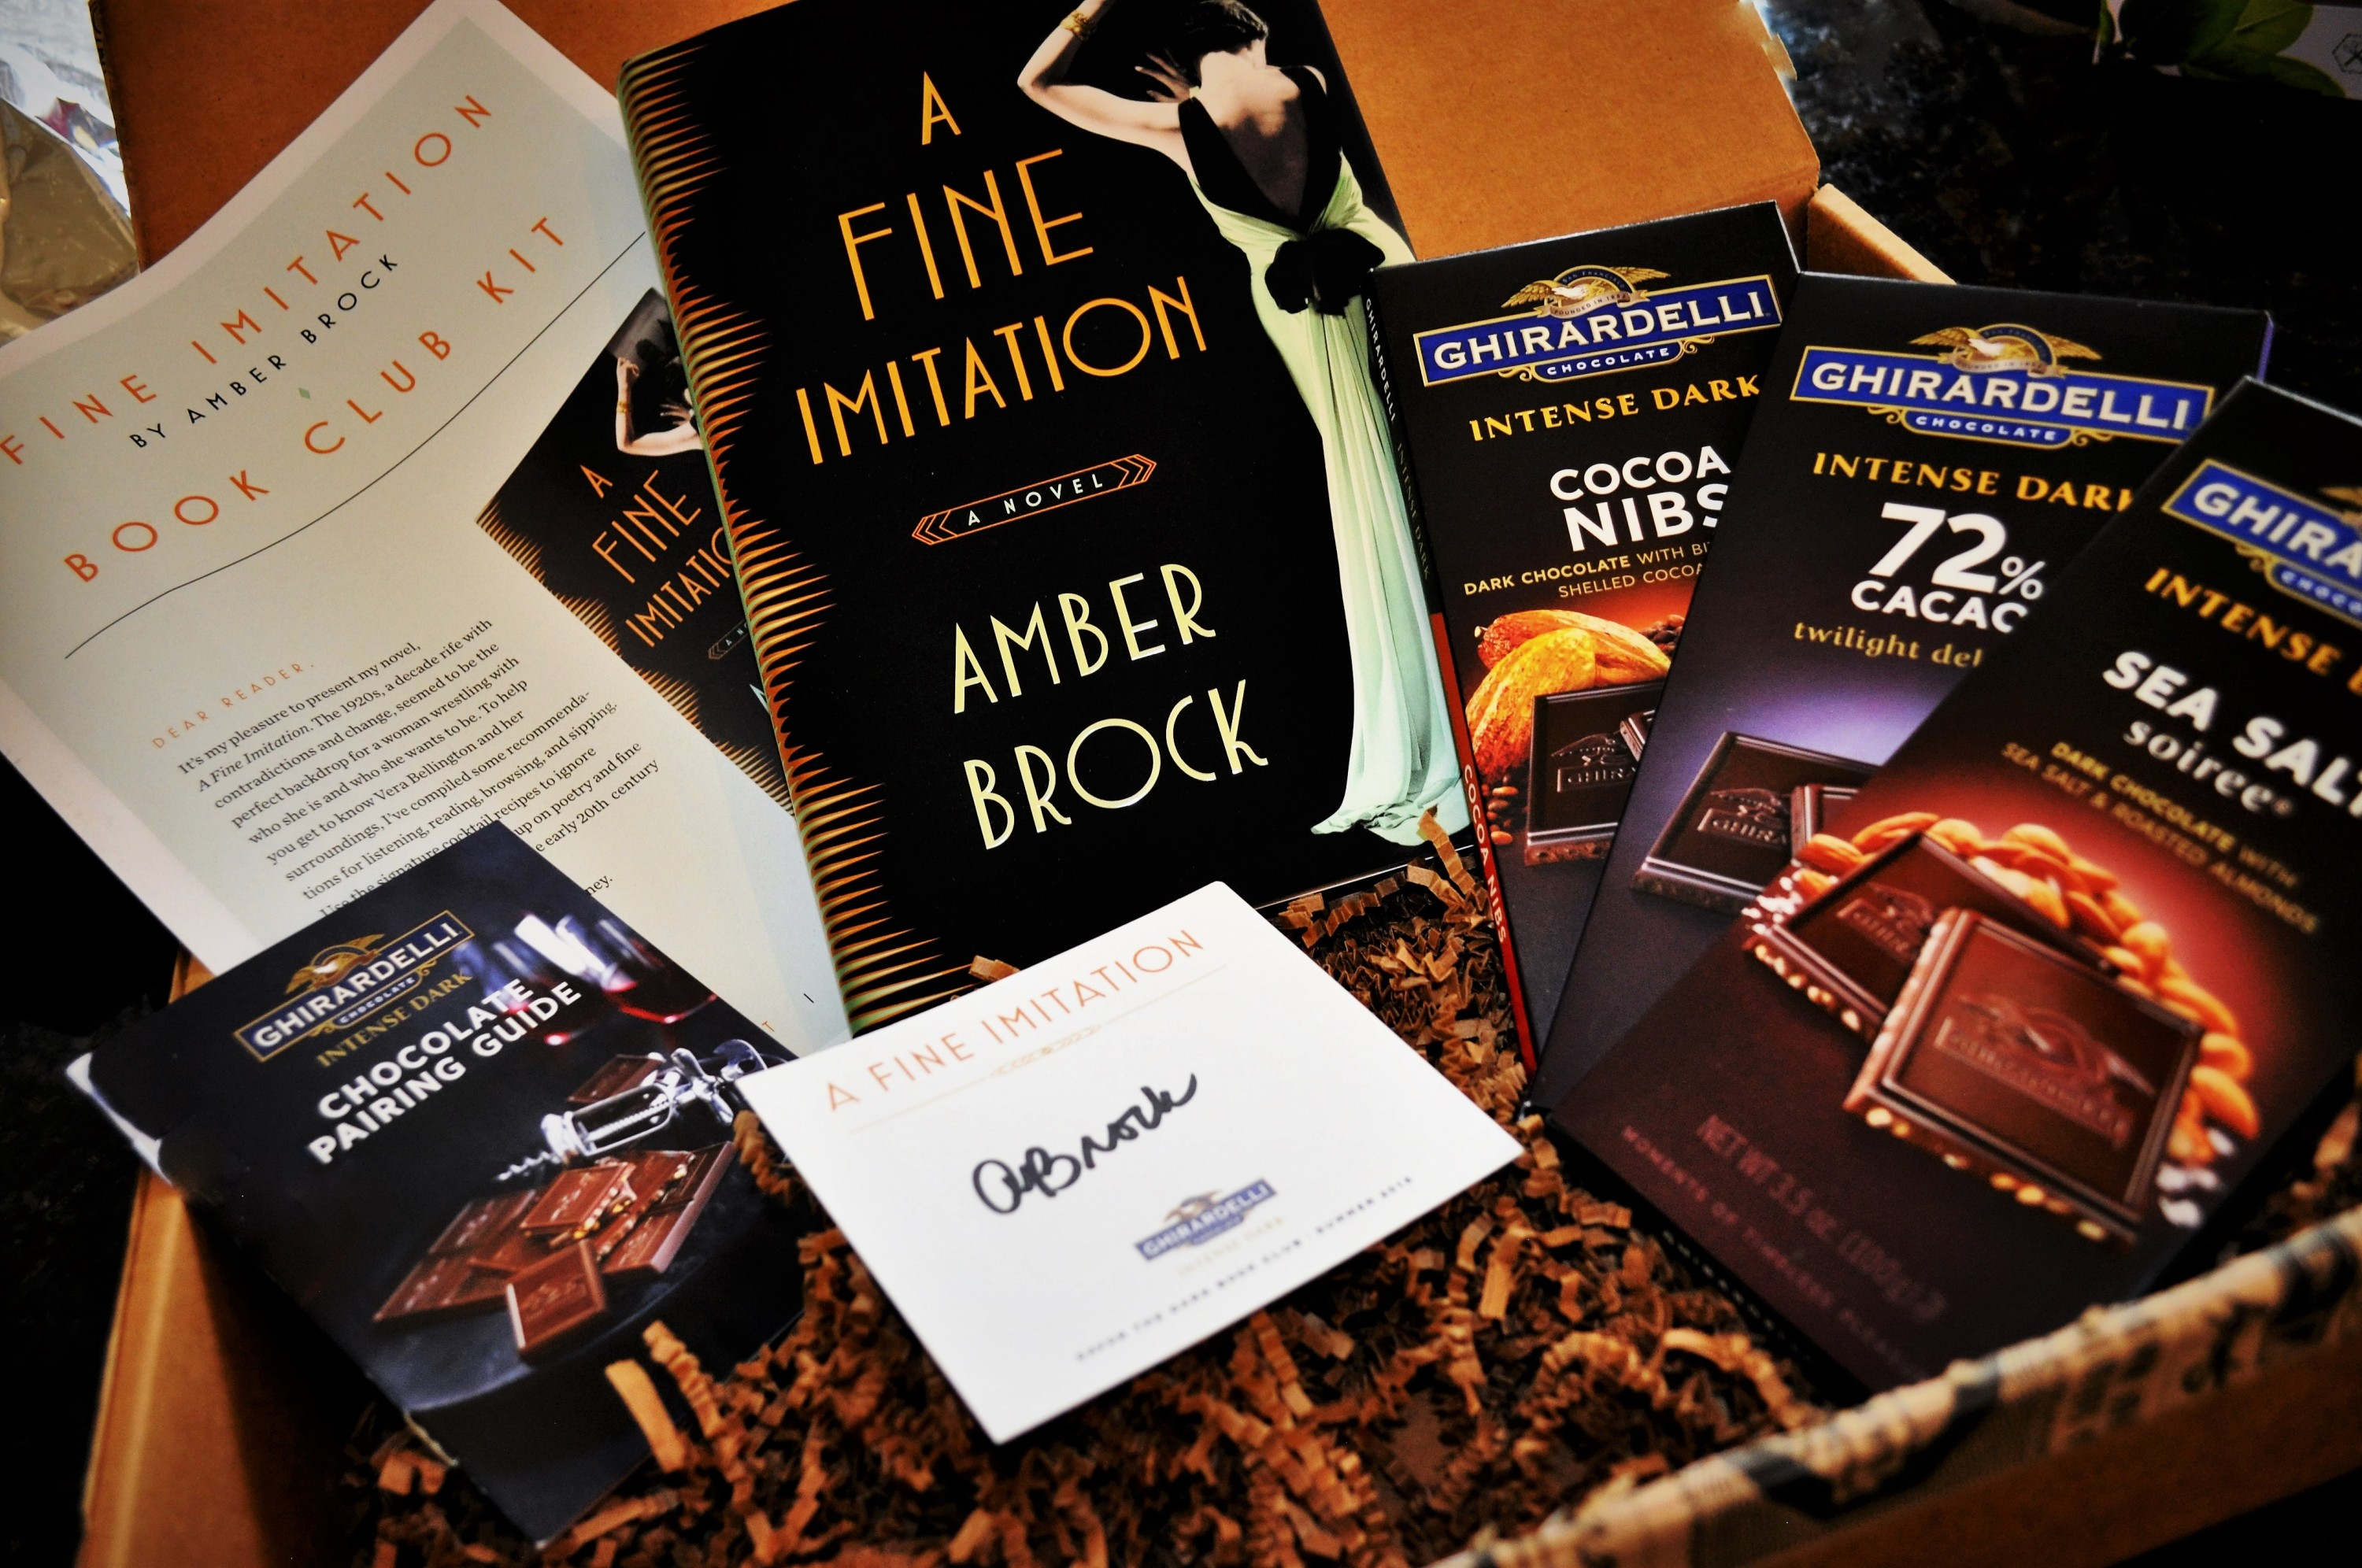 Ghirardelli's Savor the Dark Book Club May 2016 Contents